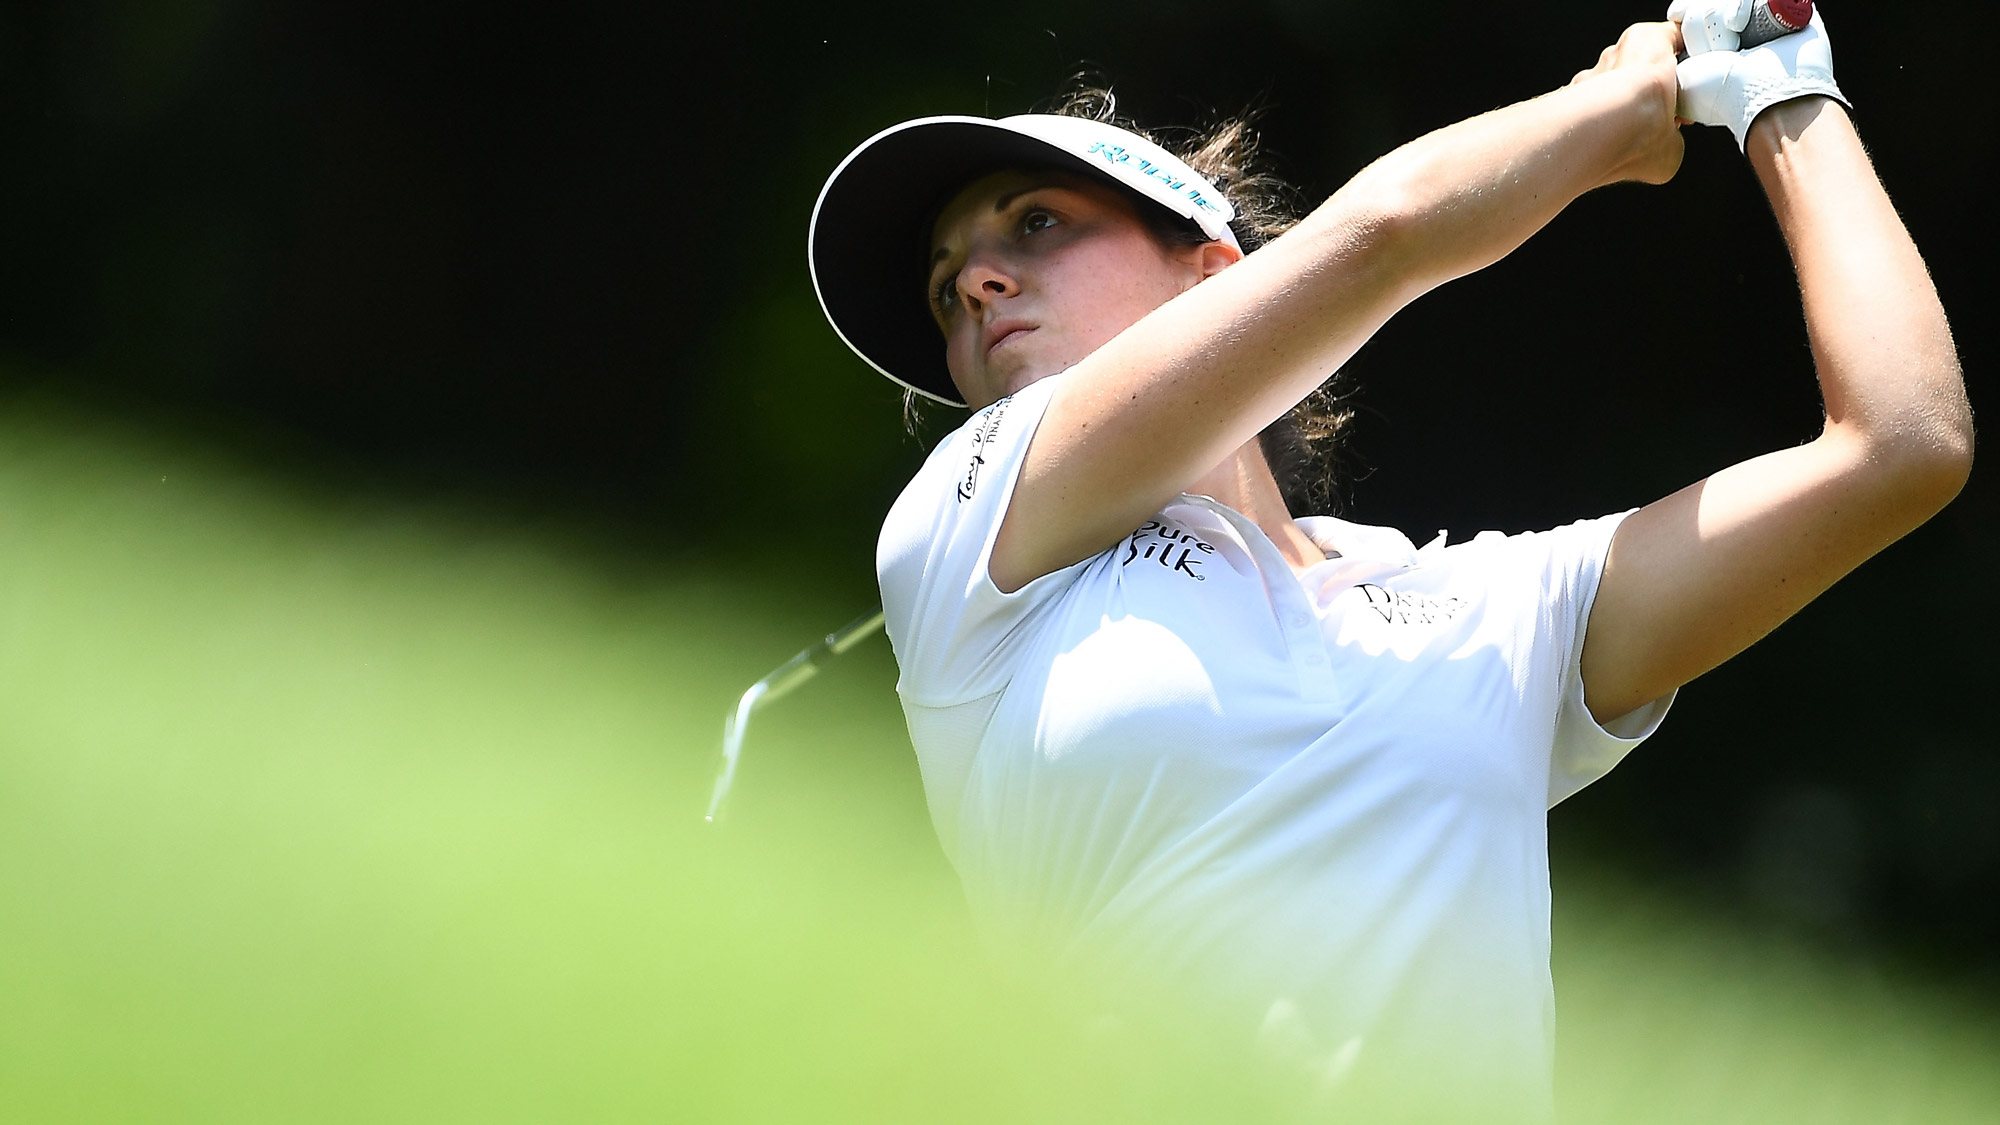 Aussie Kirk's perfect 10-under LPGA round